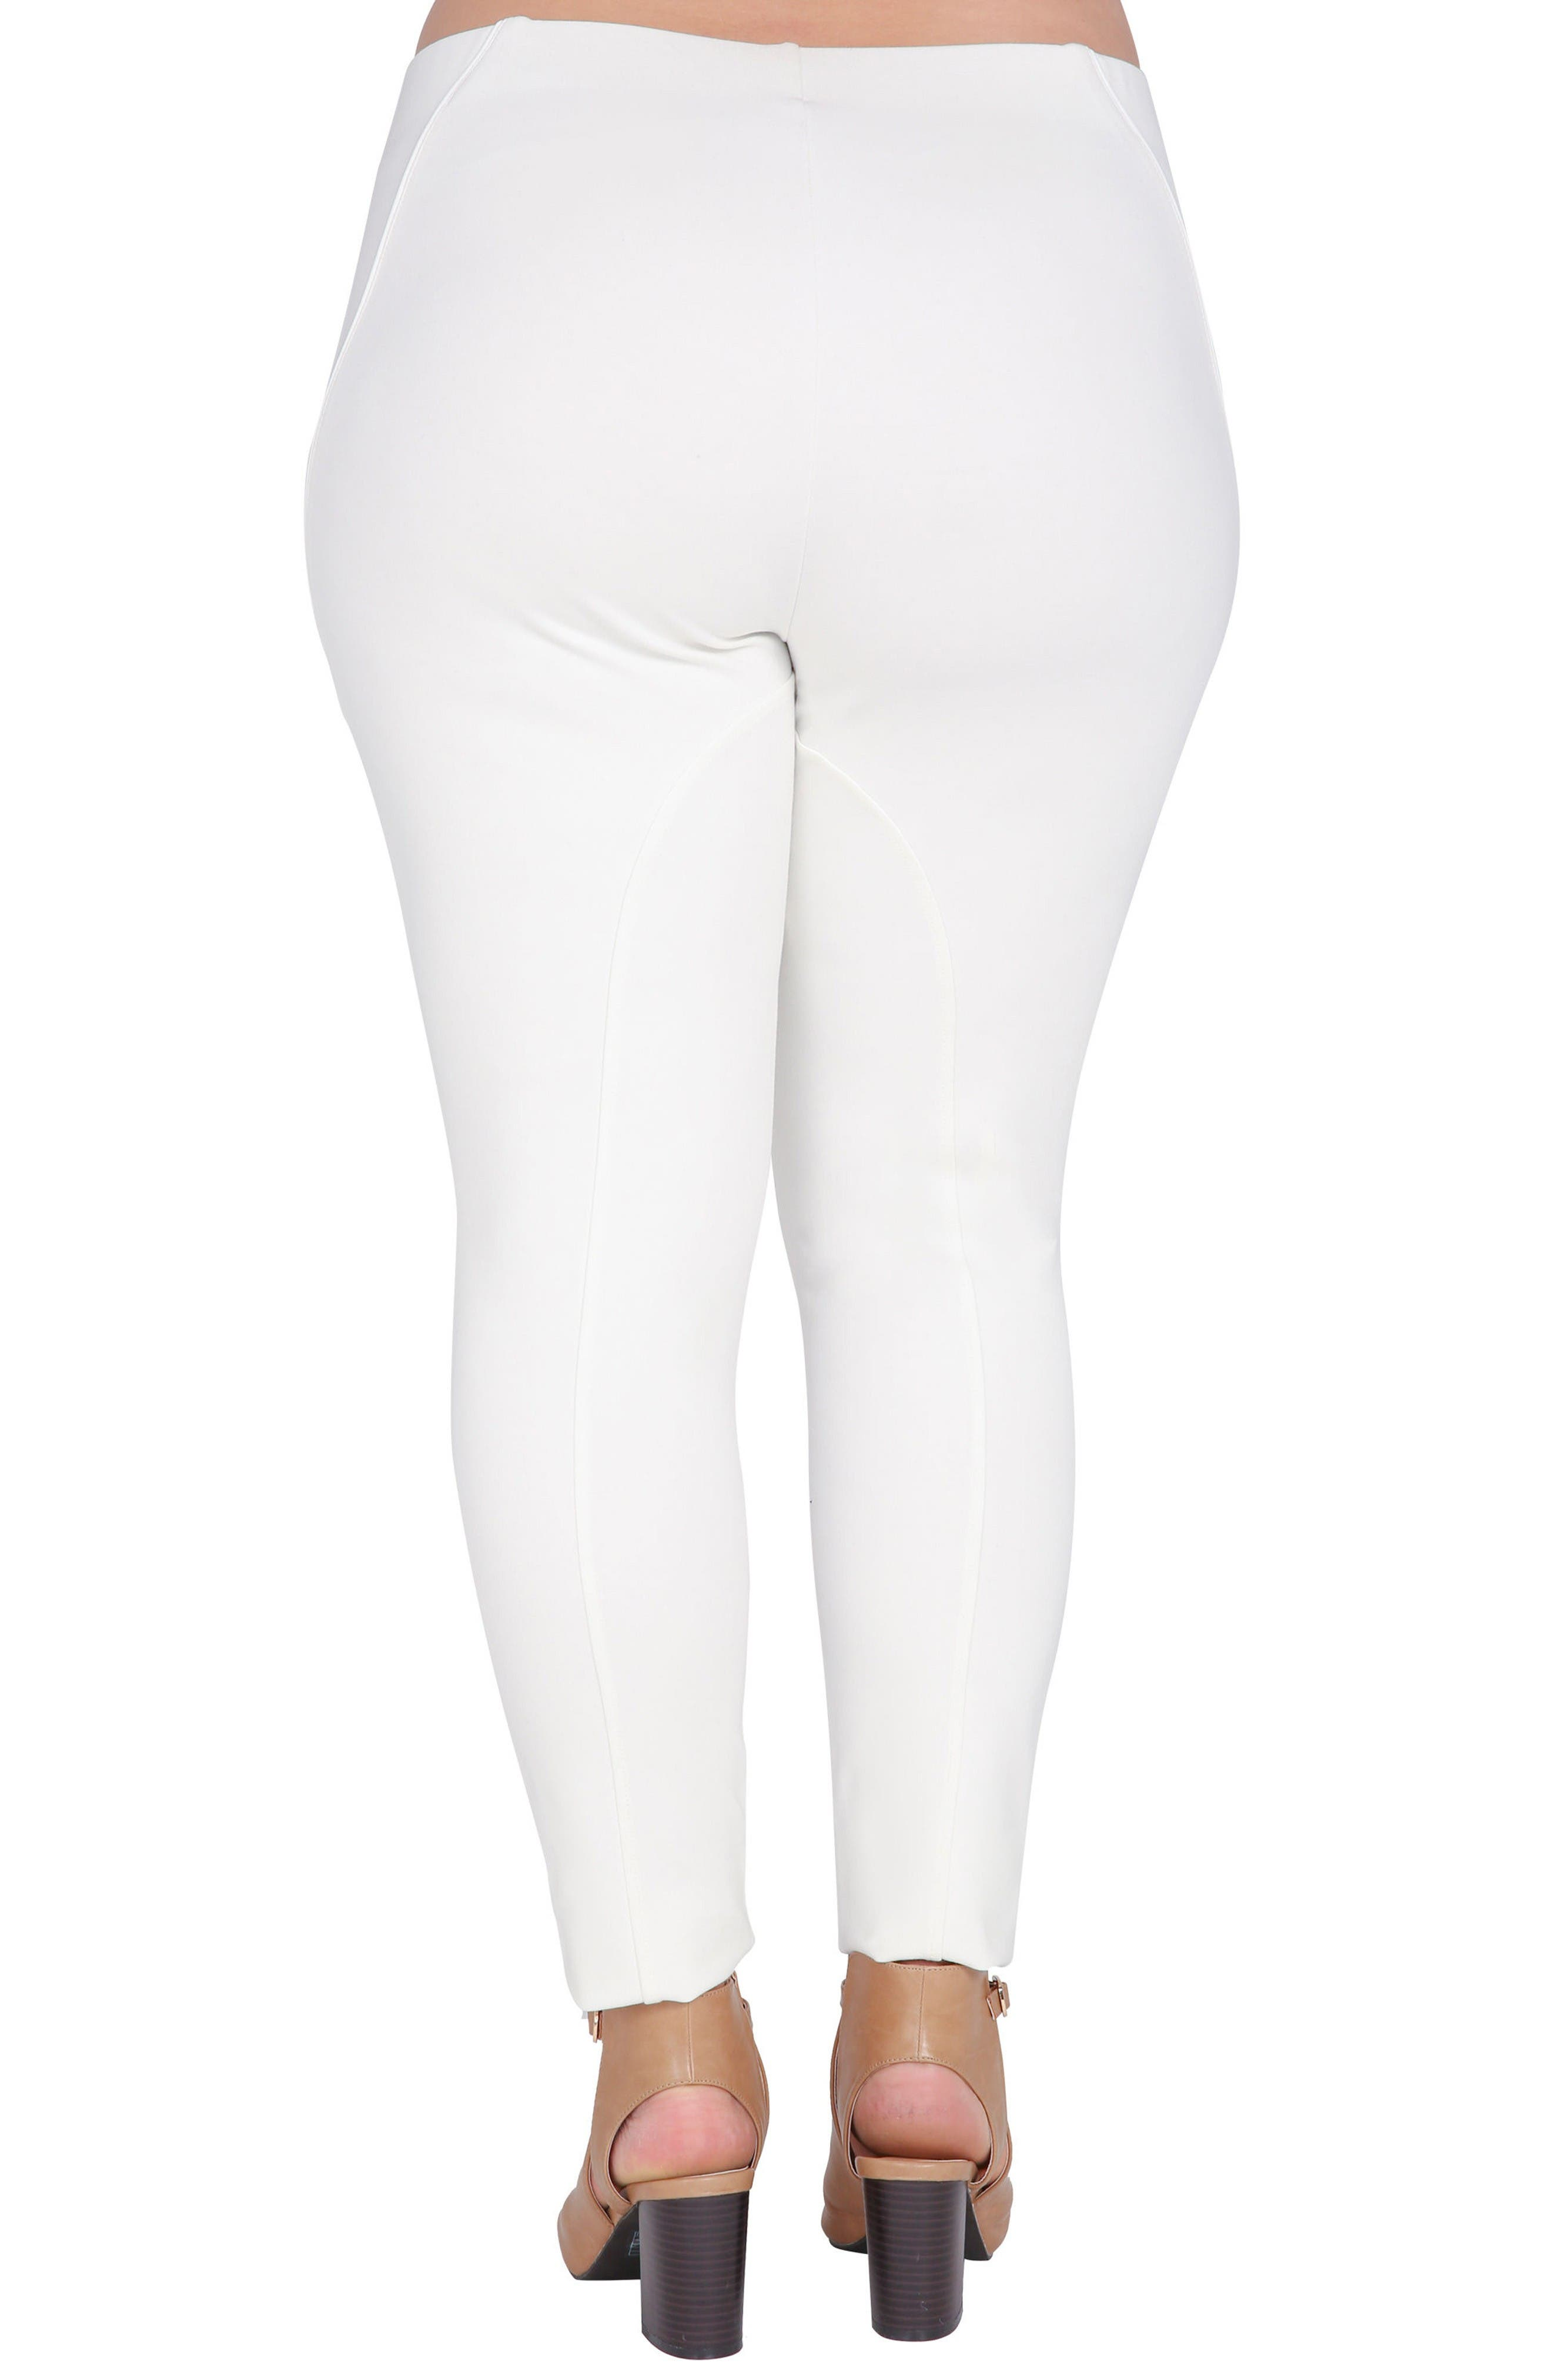 Belinda High Waist Ponte Leggings,                             Alternate thumbnail 2, color,                             White